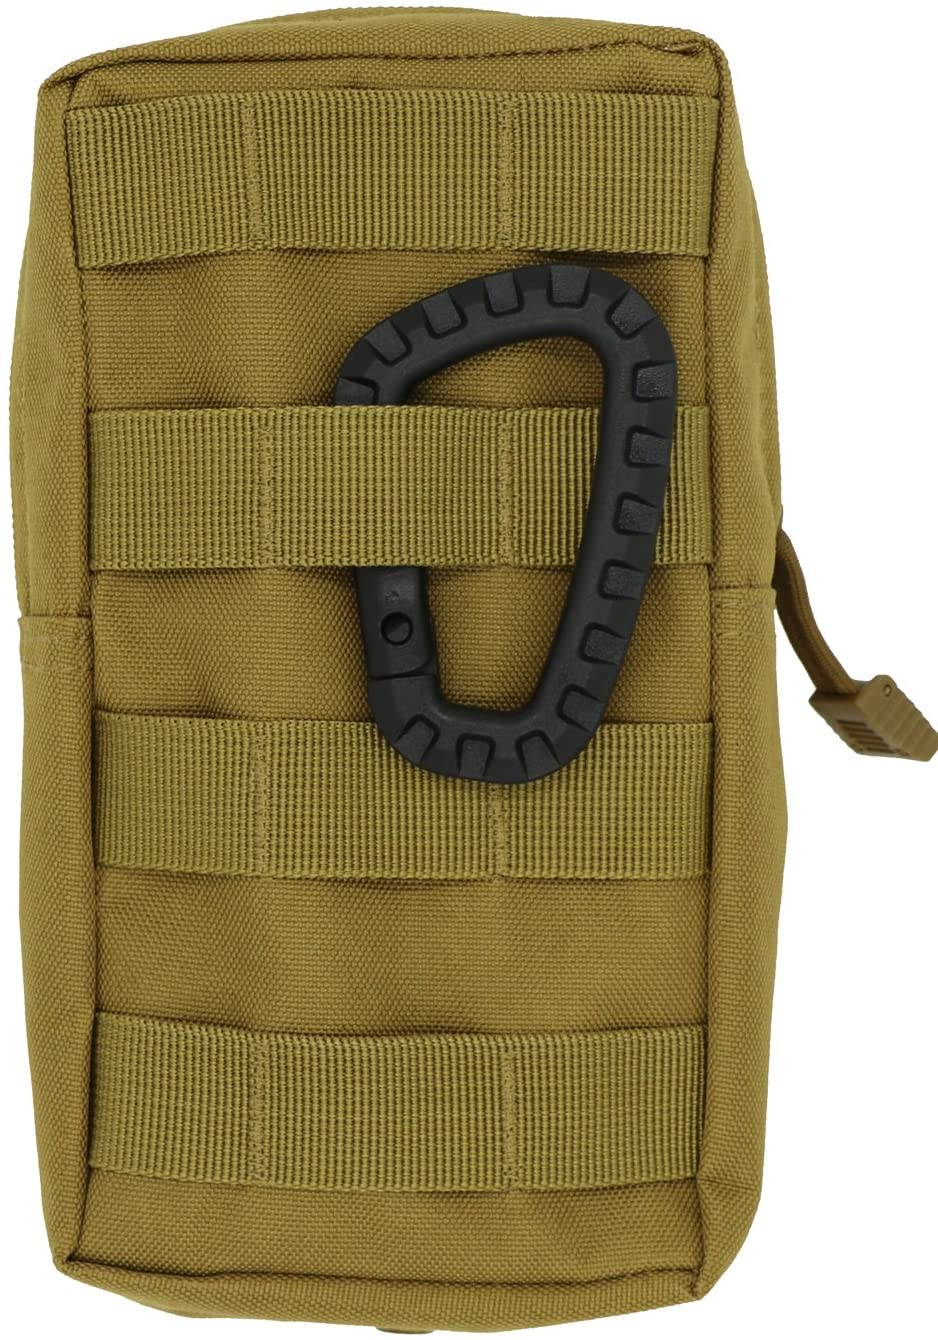 LefRight Khaki Medium Tactical Molle Accessory EDC Pocket Pouch with Carabiner